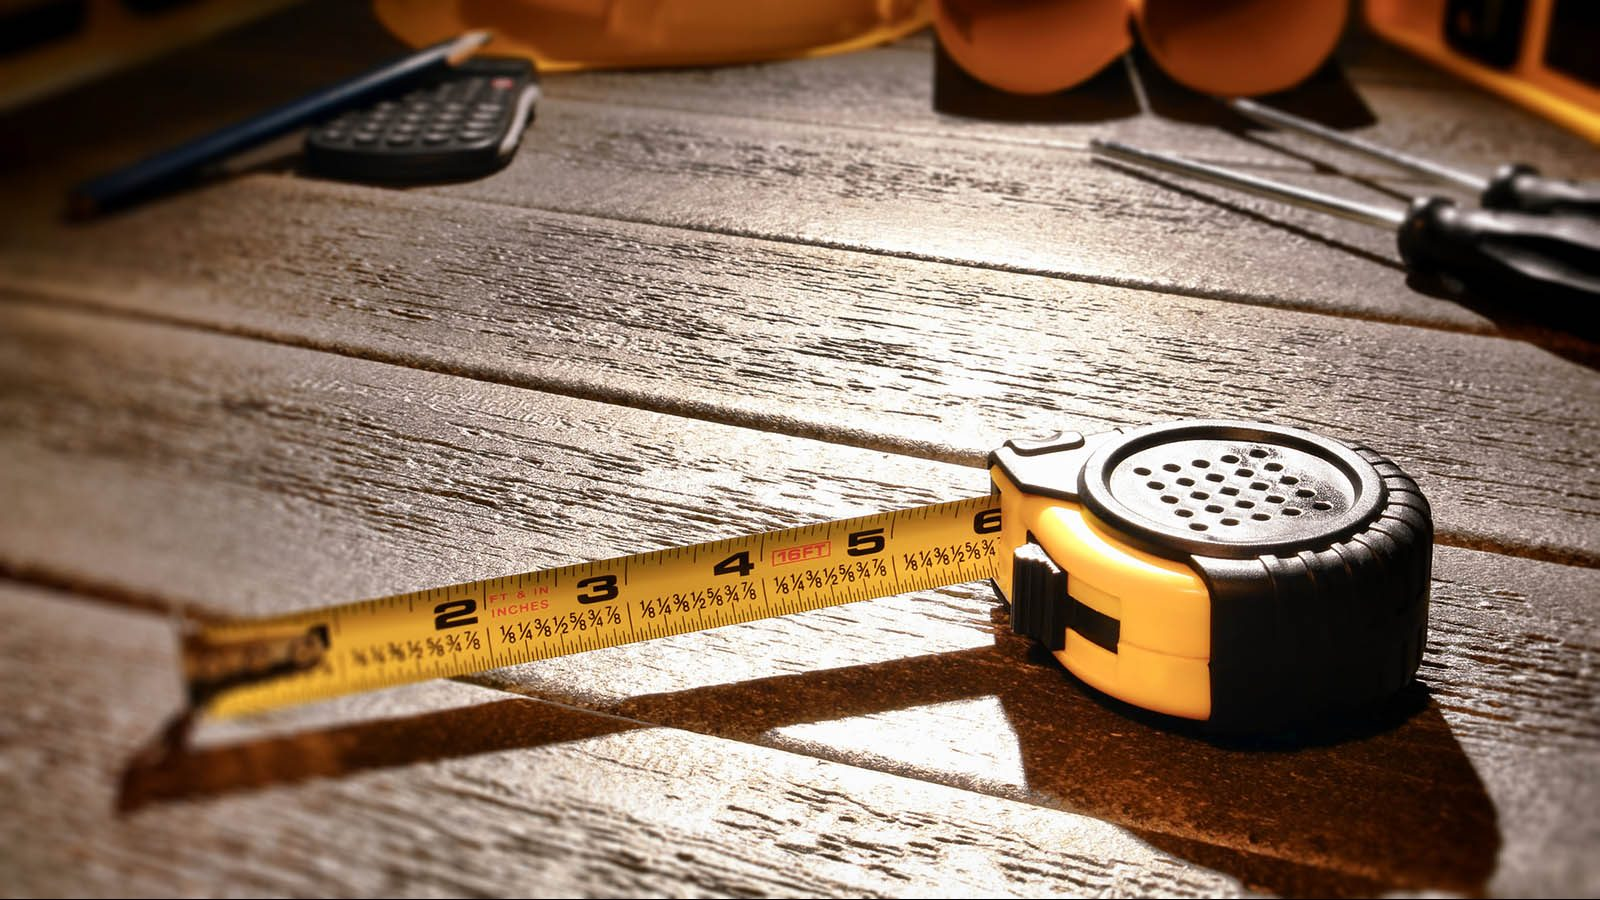 Tape Measure at Building Construction Work Site